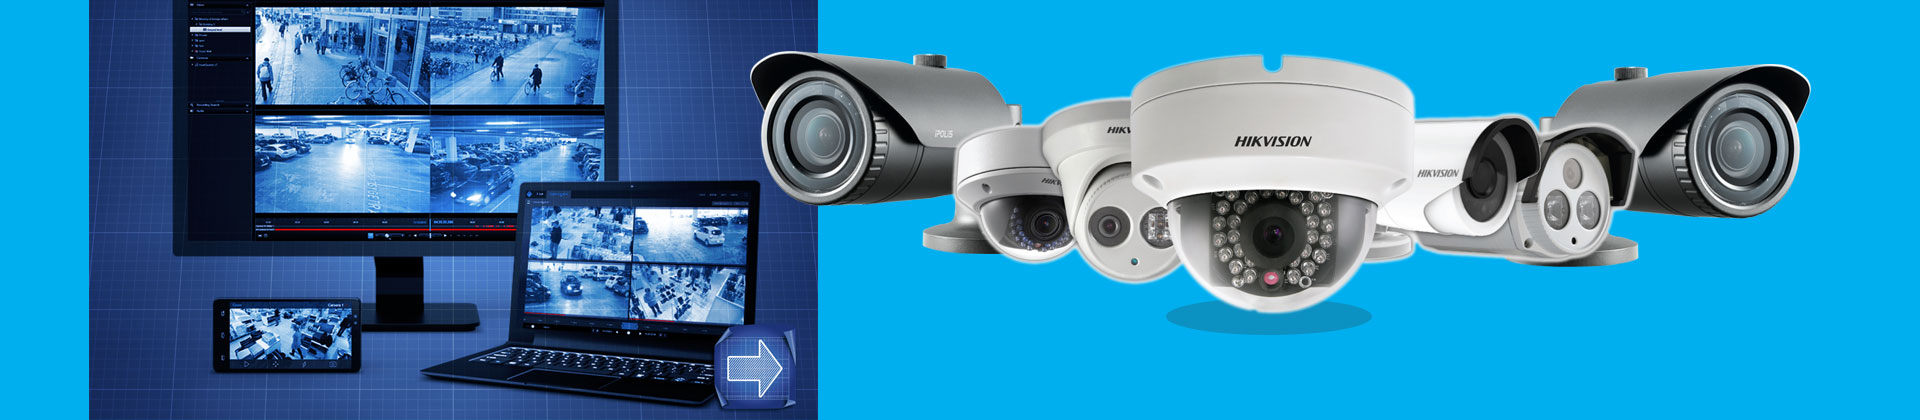 West Coast CCTV systems installations for Home and Busines, whether IP CCTV or Analogue TV, including numberplate recognition capability - all our work is guaranteed!